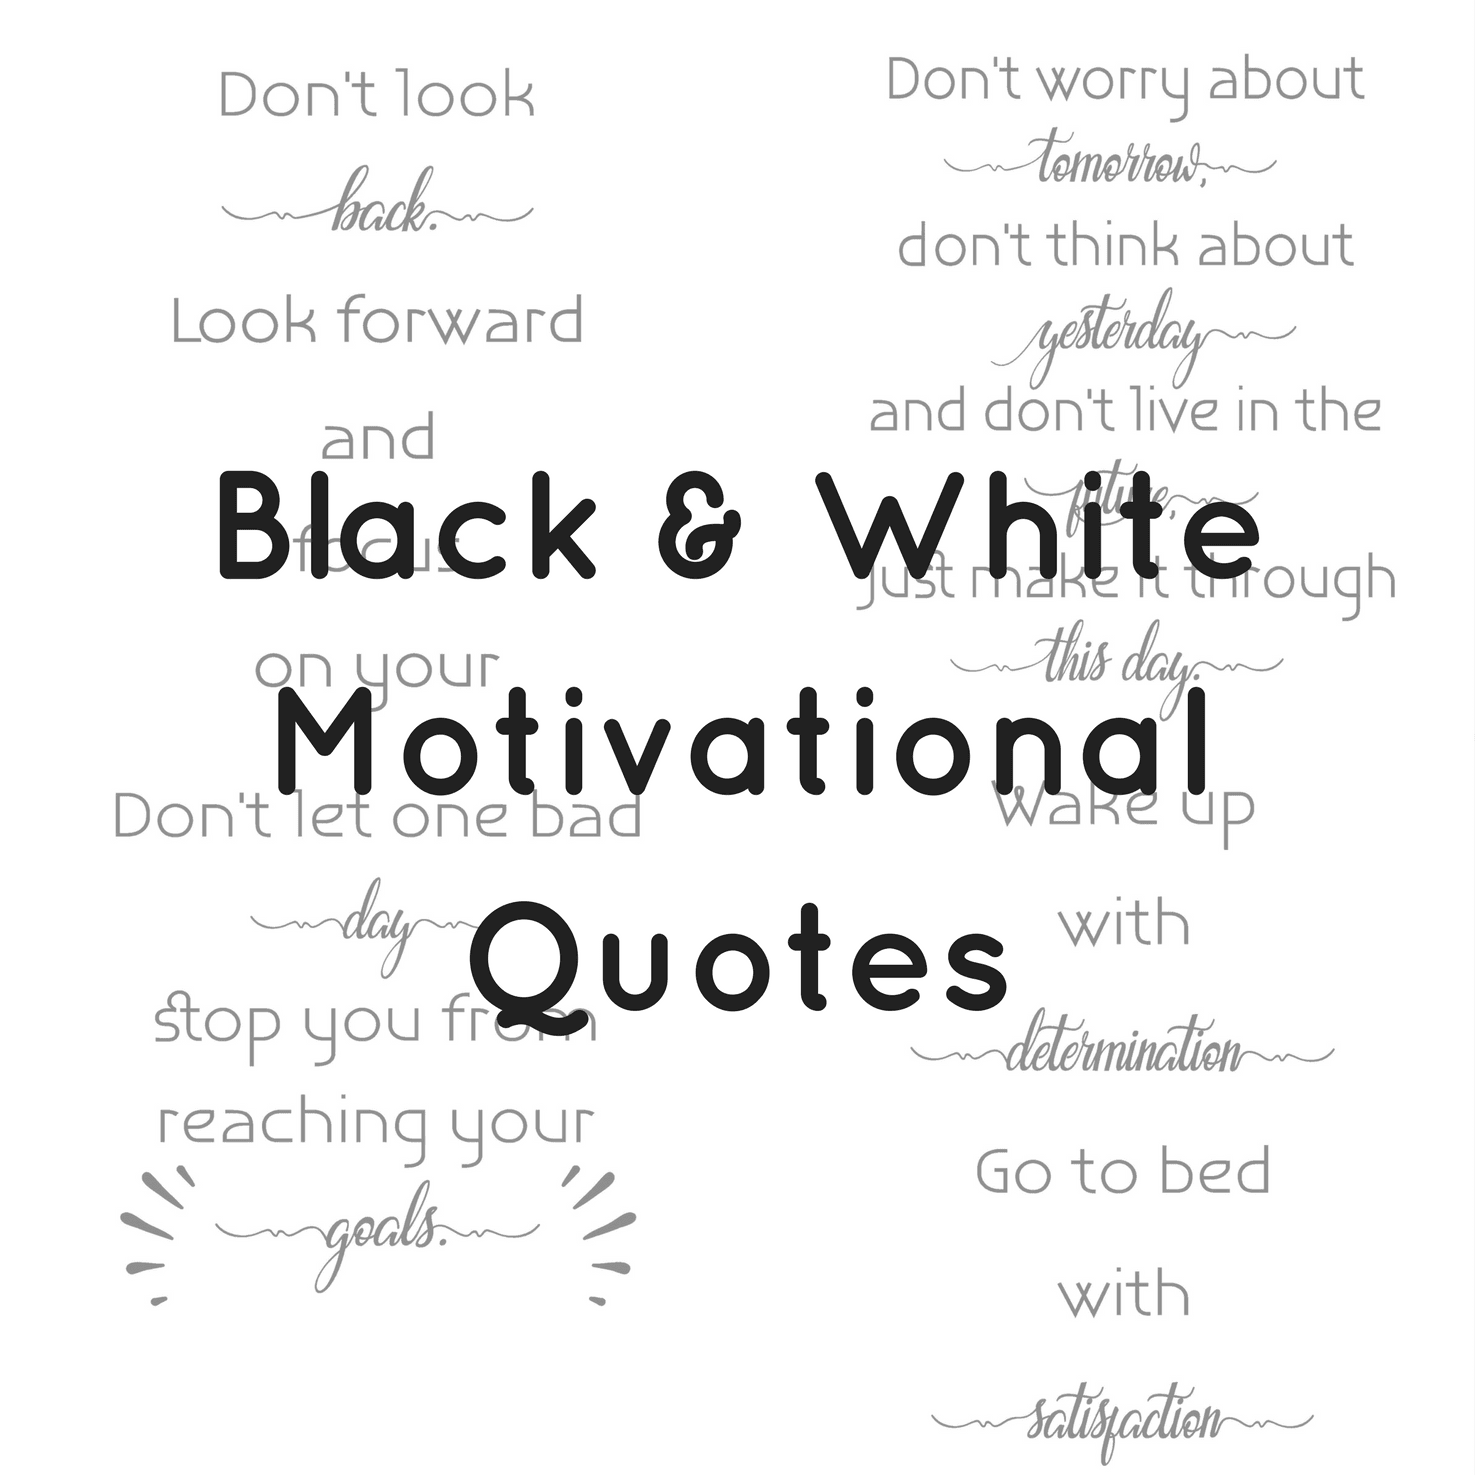 Black And White quot;s (80 quot;s) - Goodreads